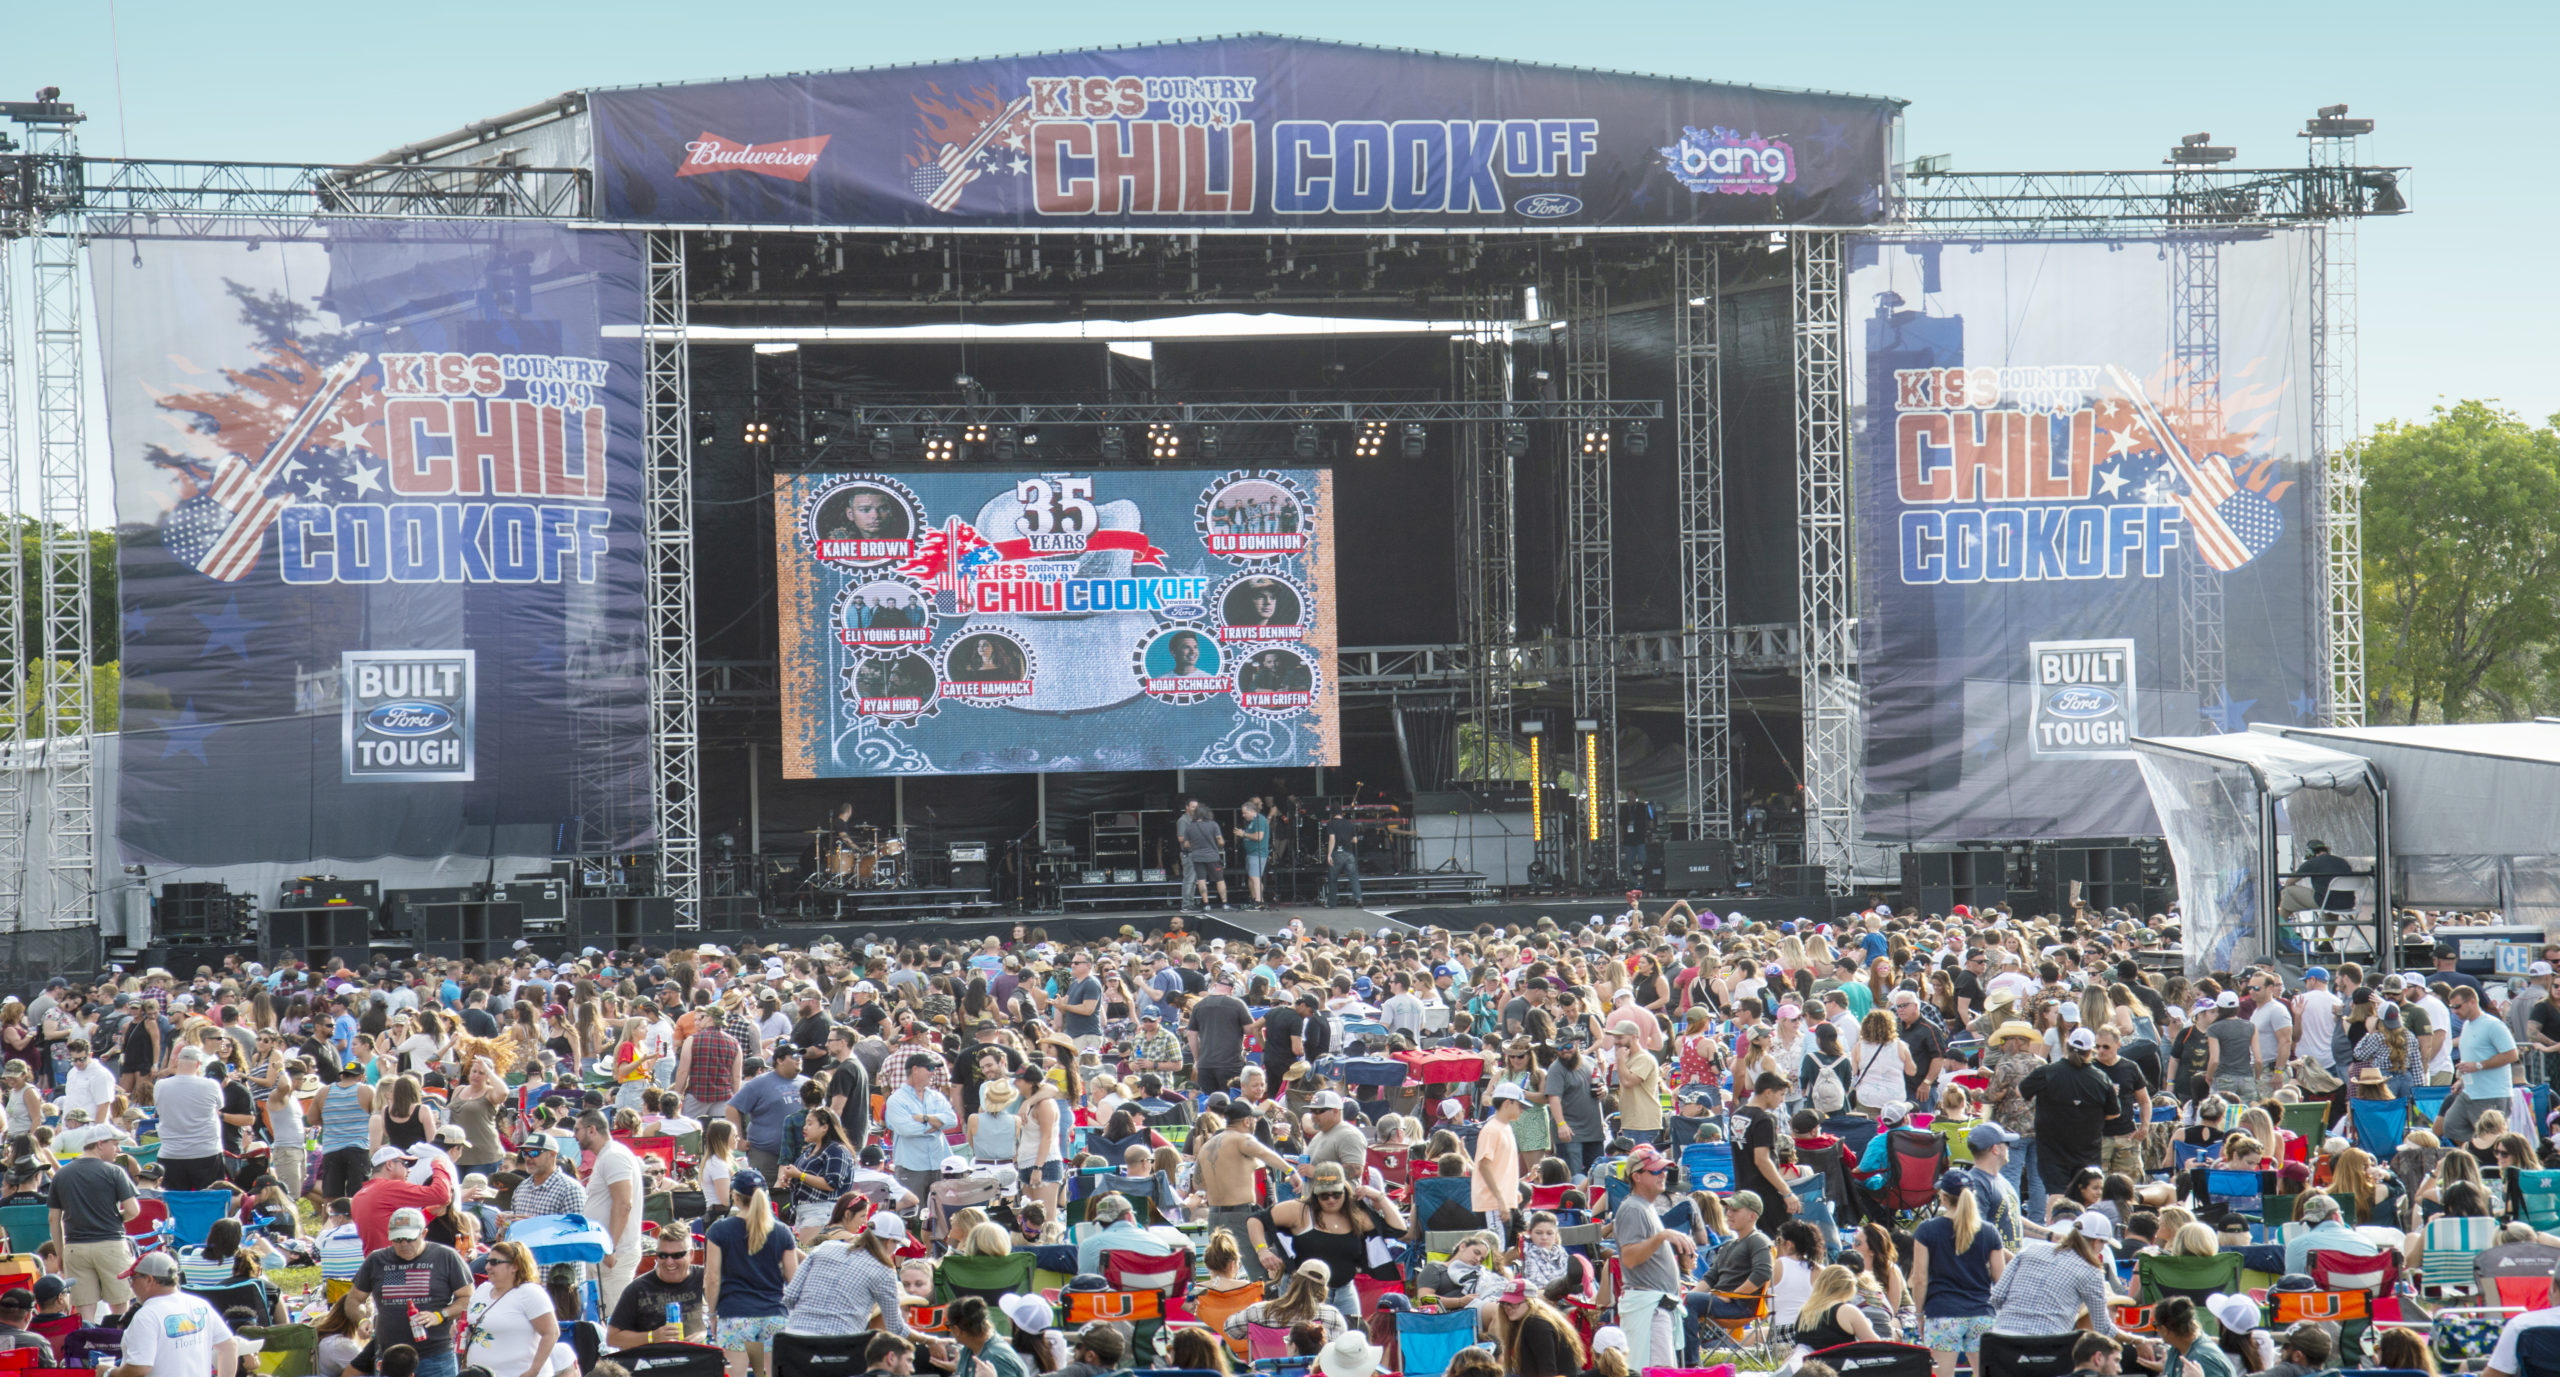 Festival Review Kiss Country 99 9 Chili Cookoff Didn T Disappoint Musicfestnews